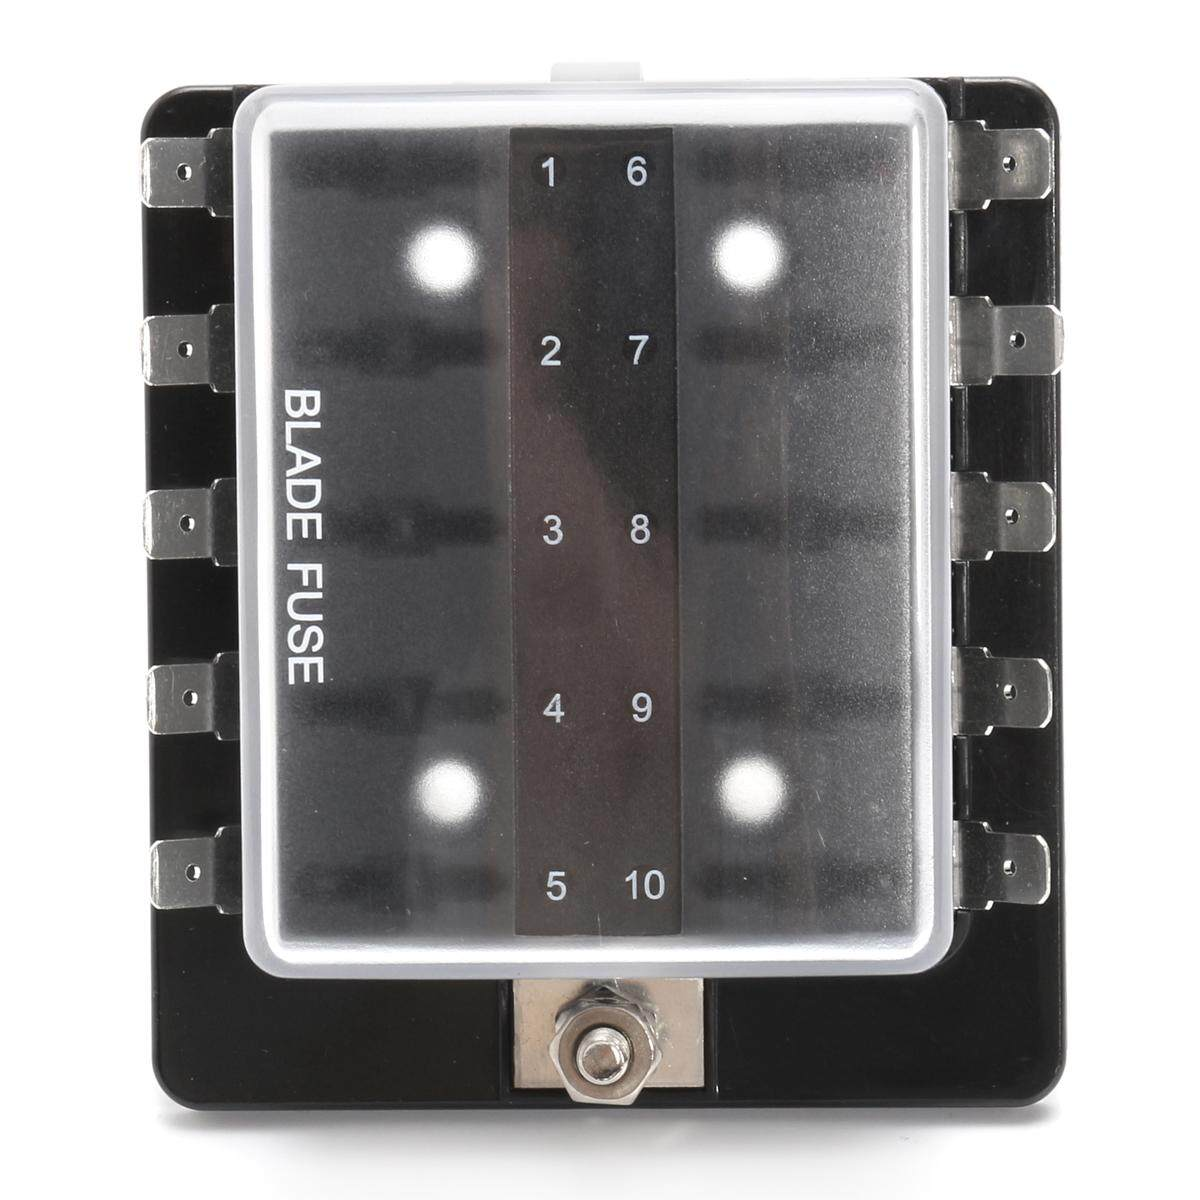 10 Way Dc12v/24v/32v Car Van Boat Marine Blade Fuse Box Holder Block /w Cover - Intl By Audew.